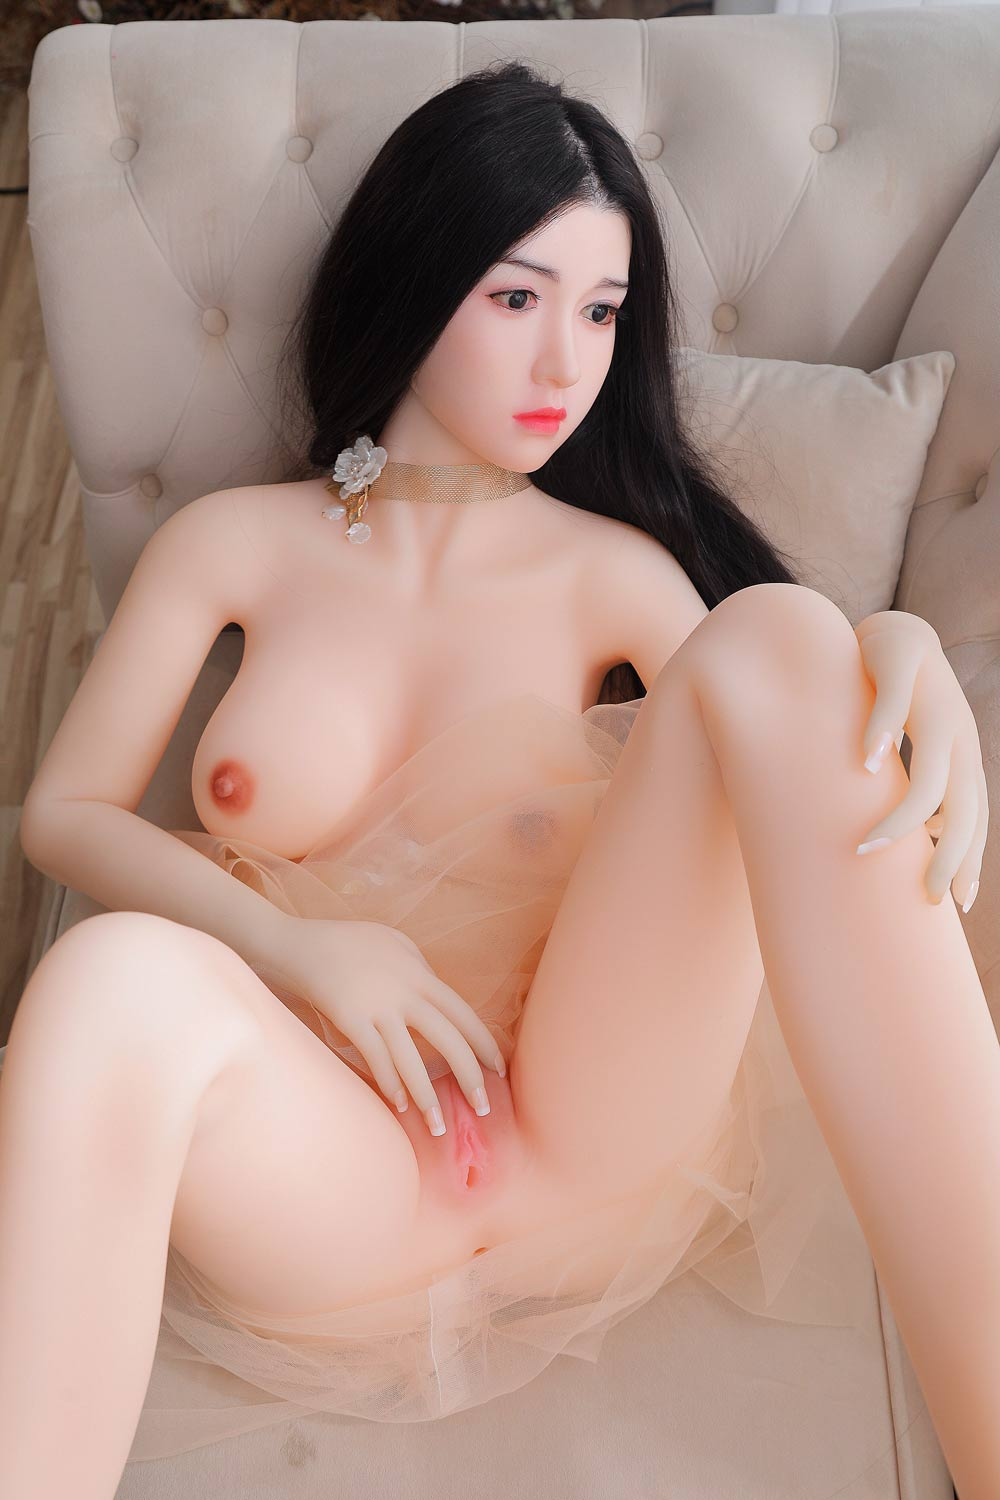 Silicone sex doll with hands touching vagina